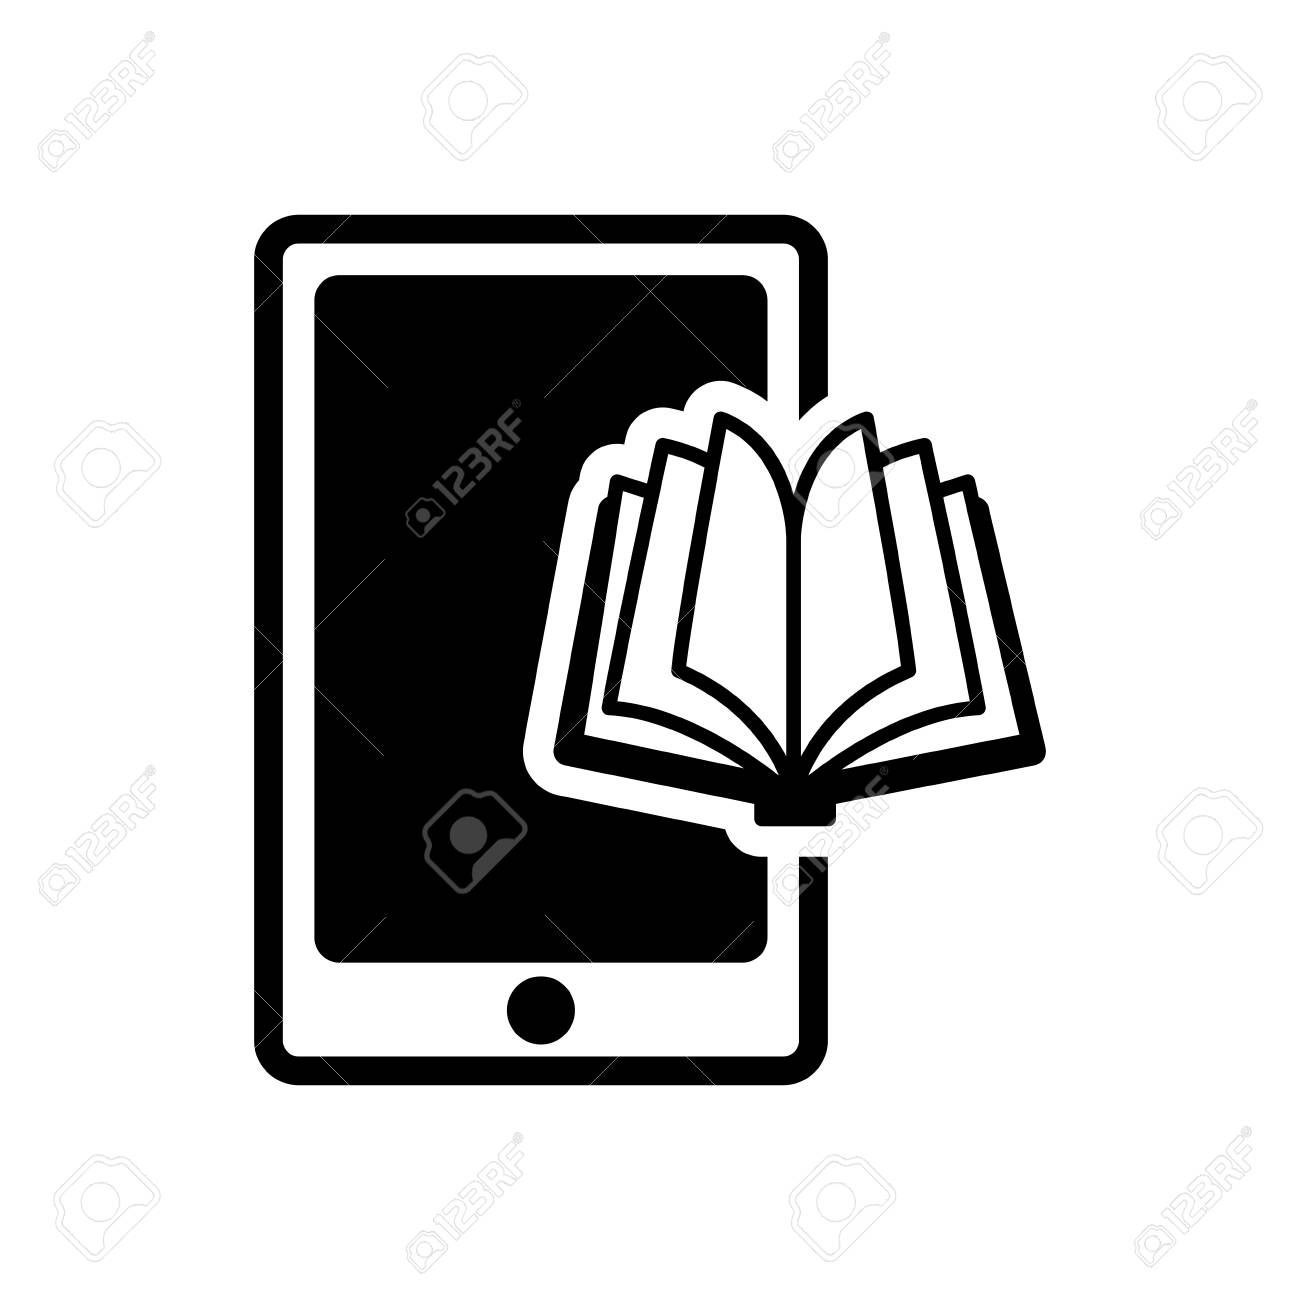 This ebook icon is in flat style available to download as png, svg, ai, eps, or base64 file is part of ebook icons family. Ebook Book Smartphone Technology Reading Icon Flat Silhouette And Isolated Design Vector Illustration Royalty Free Cliparts Vectors And Stock Illustration Image 61383792